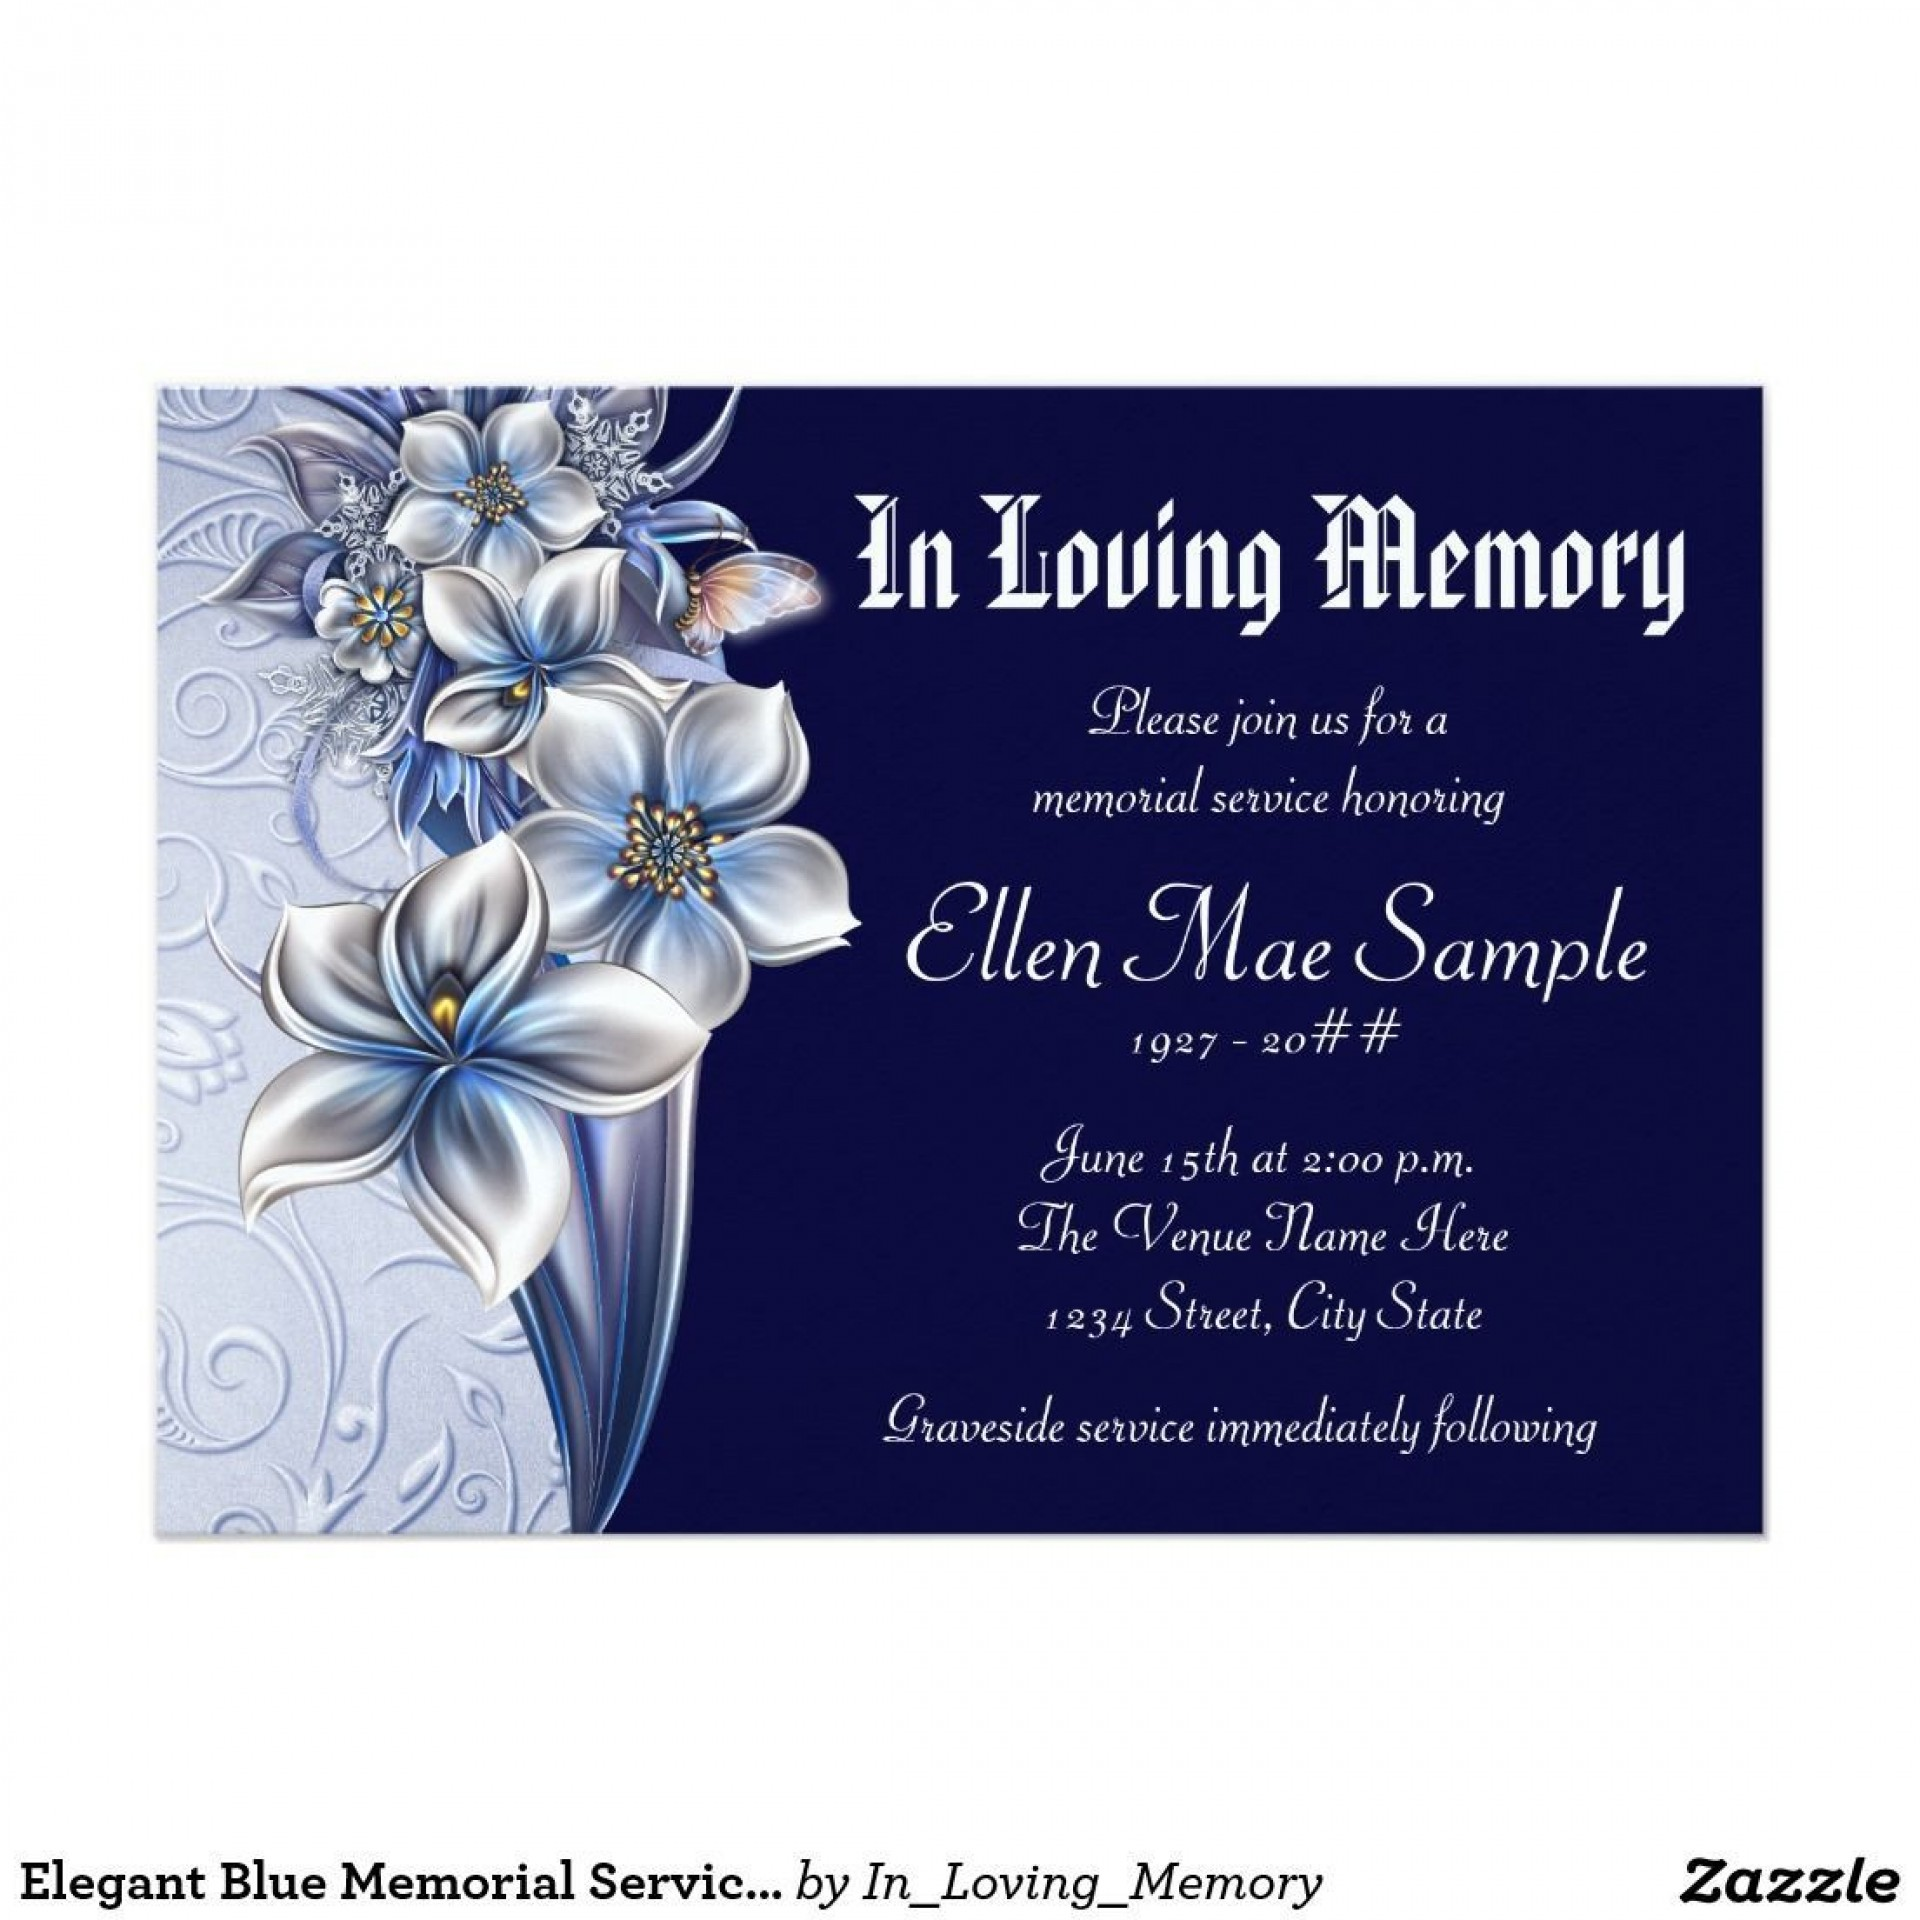 003 Stirring Celebration Of Life Invite Template Free Example  Invitation Download1920